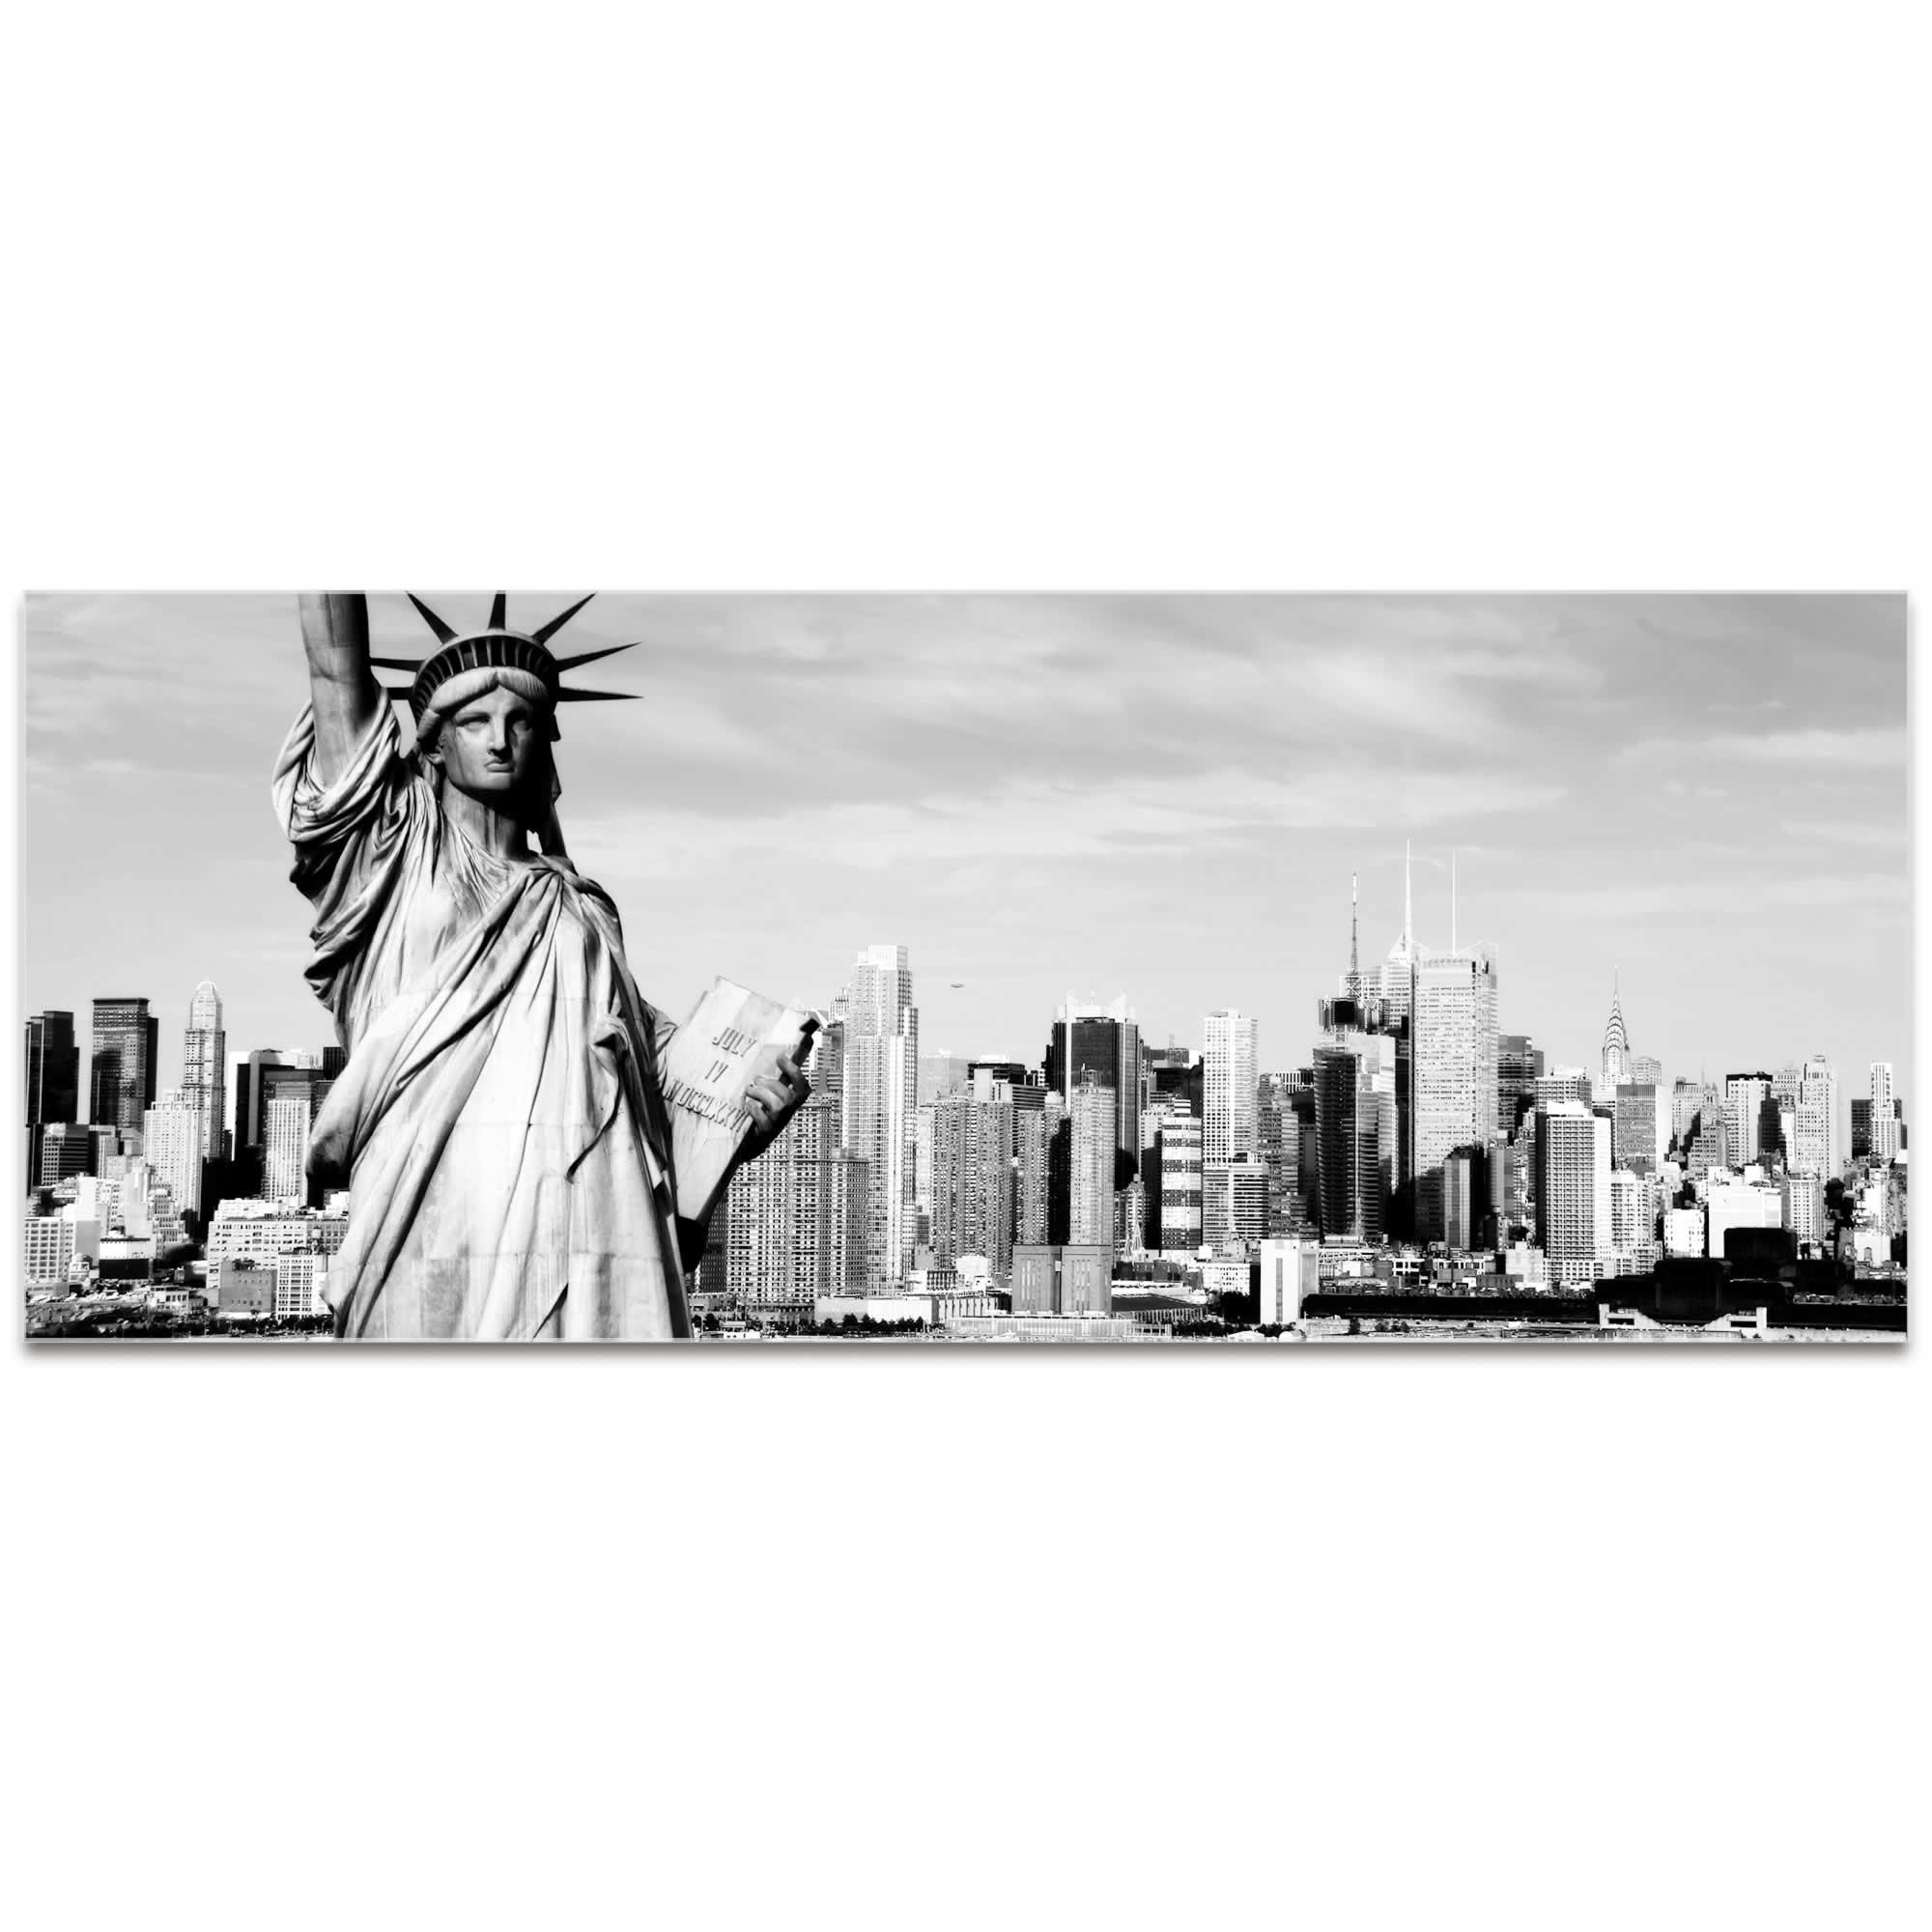 Metal art studio new york black and white city skyline urban modern art cityscape wall artwork l0279